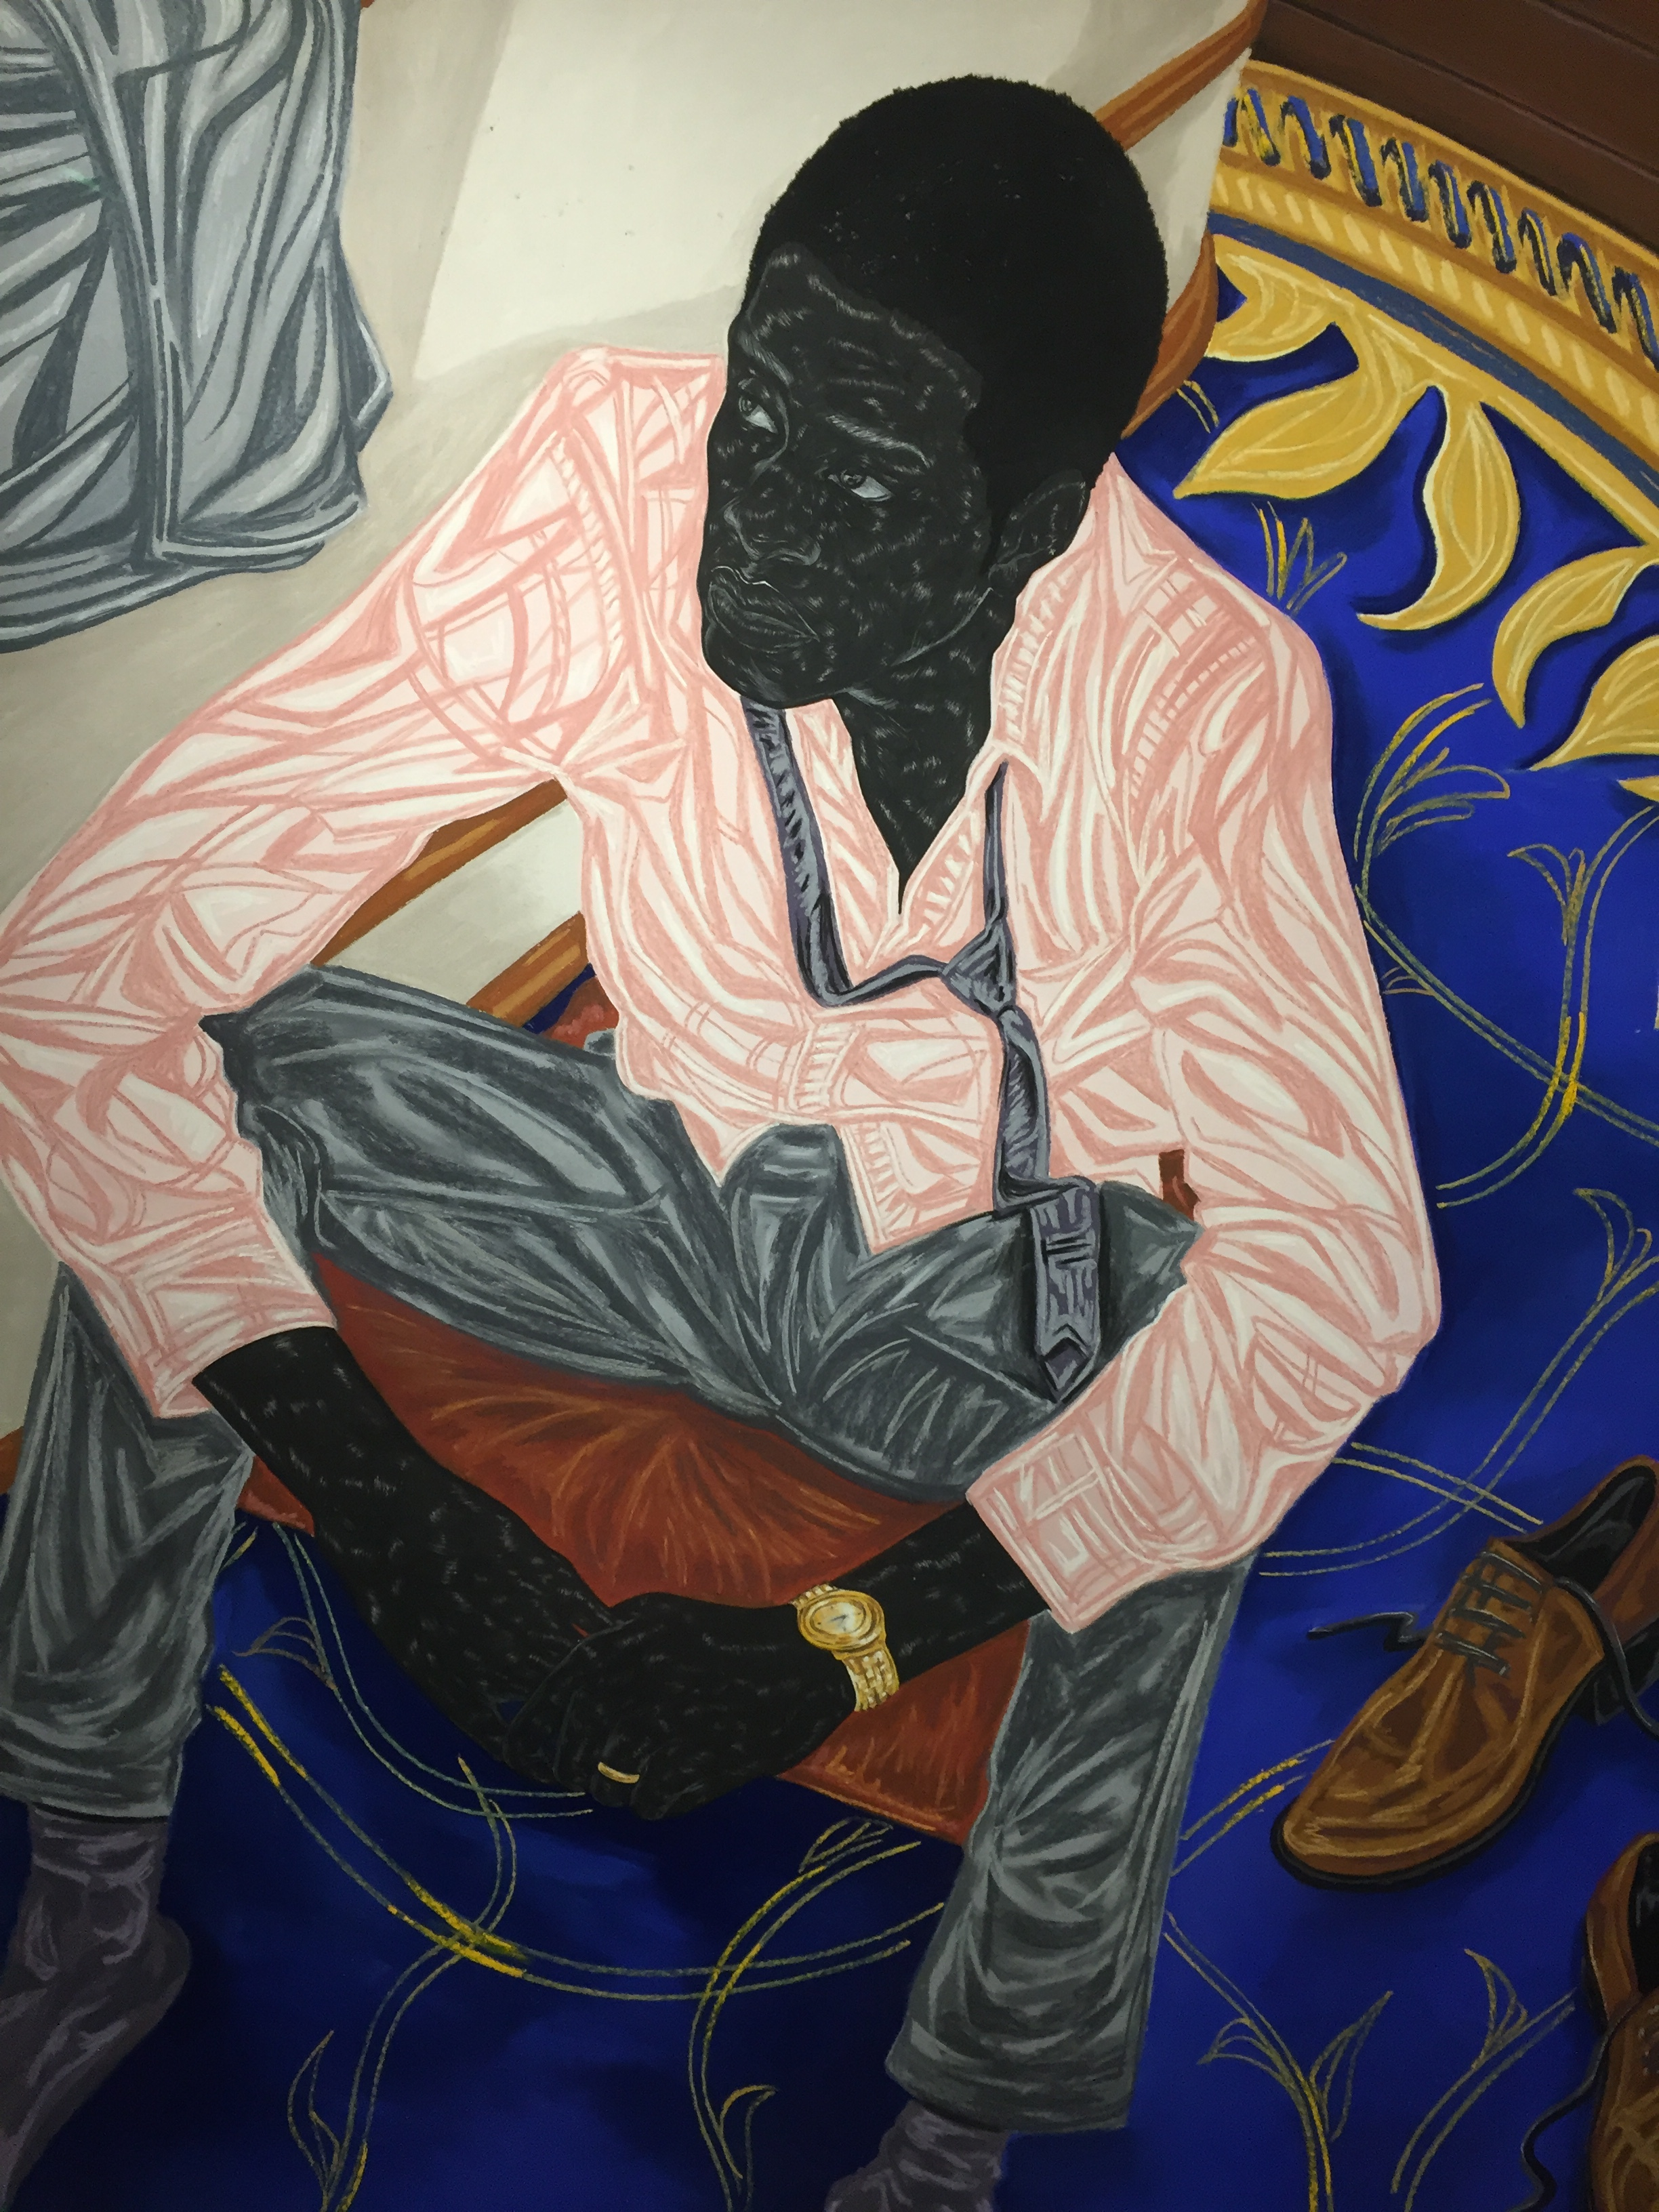 Black male, well groomed, gorgeous shade of blue, gold watch, patterned carpet, shoes off, wedding ring, loose tie, pink shirt, jacket thrown over adjacent chair, seated upon the edge of an opulent chair, fabric that glistens, fabric that hangs with grace, sheepish look.